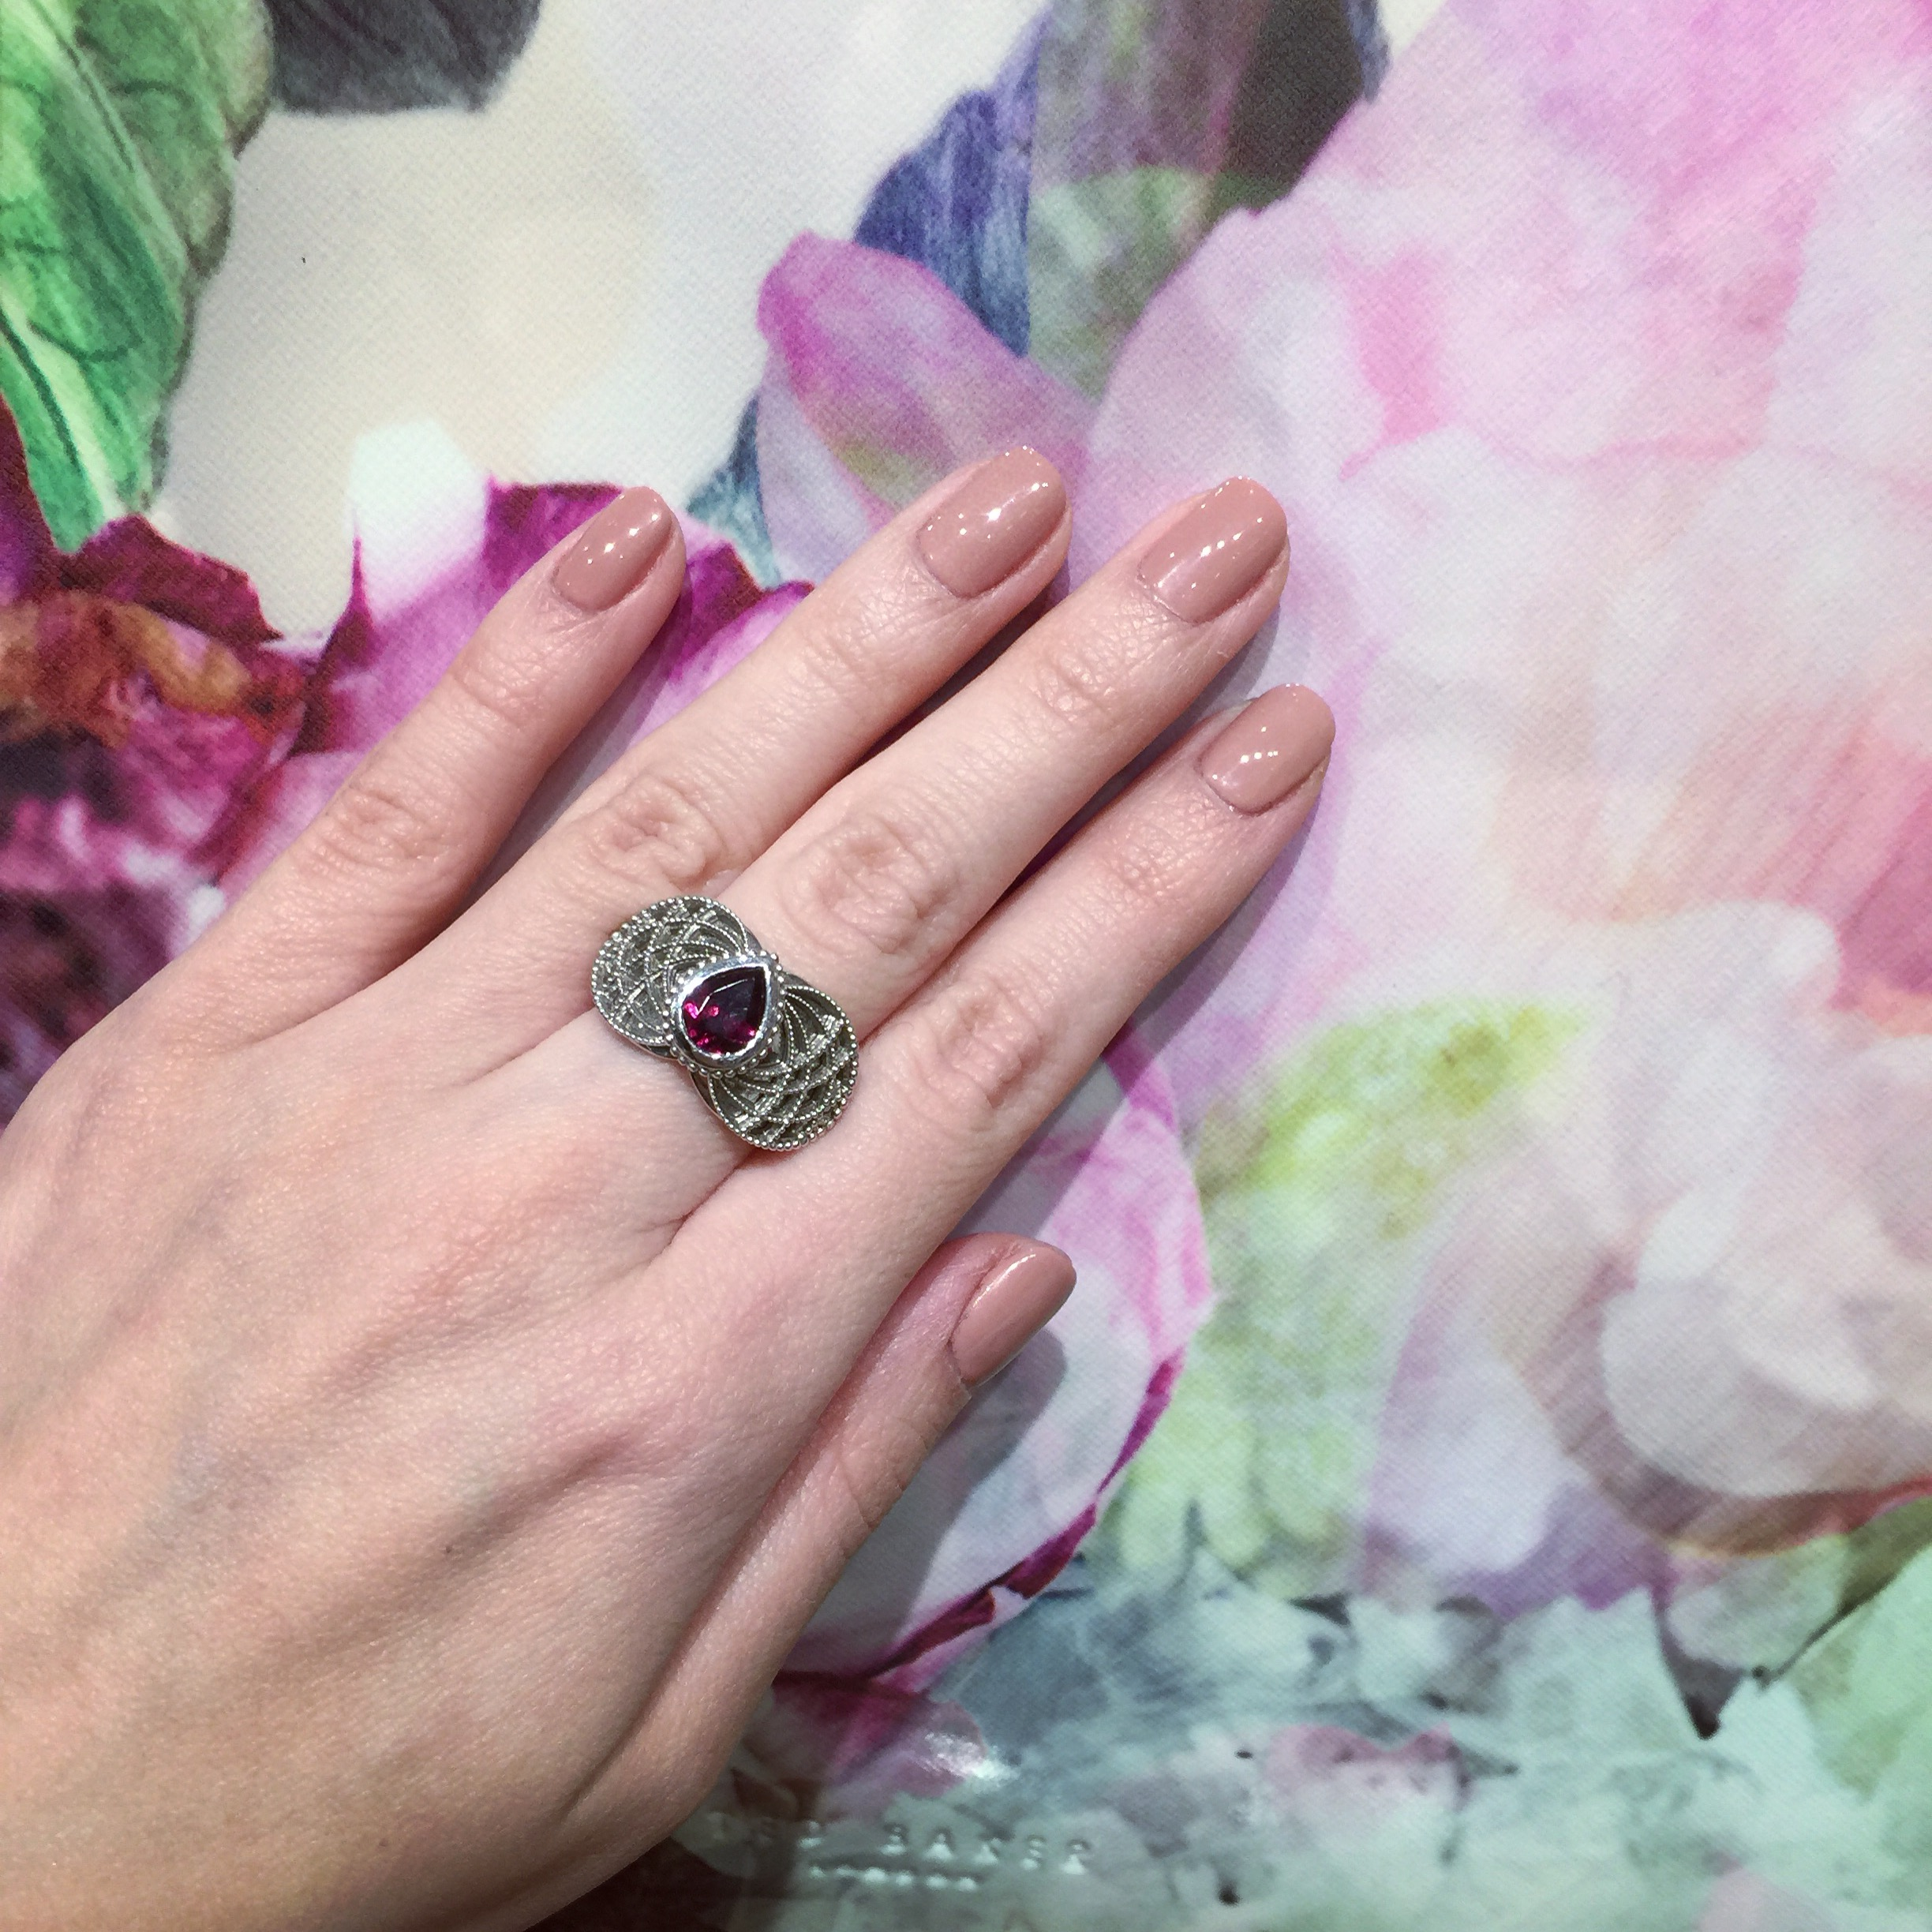 Trellis ring in full bloom   #floral  #fabulous     #fashion